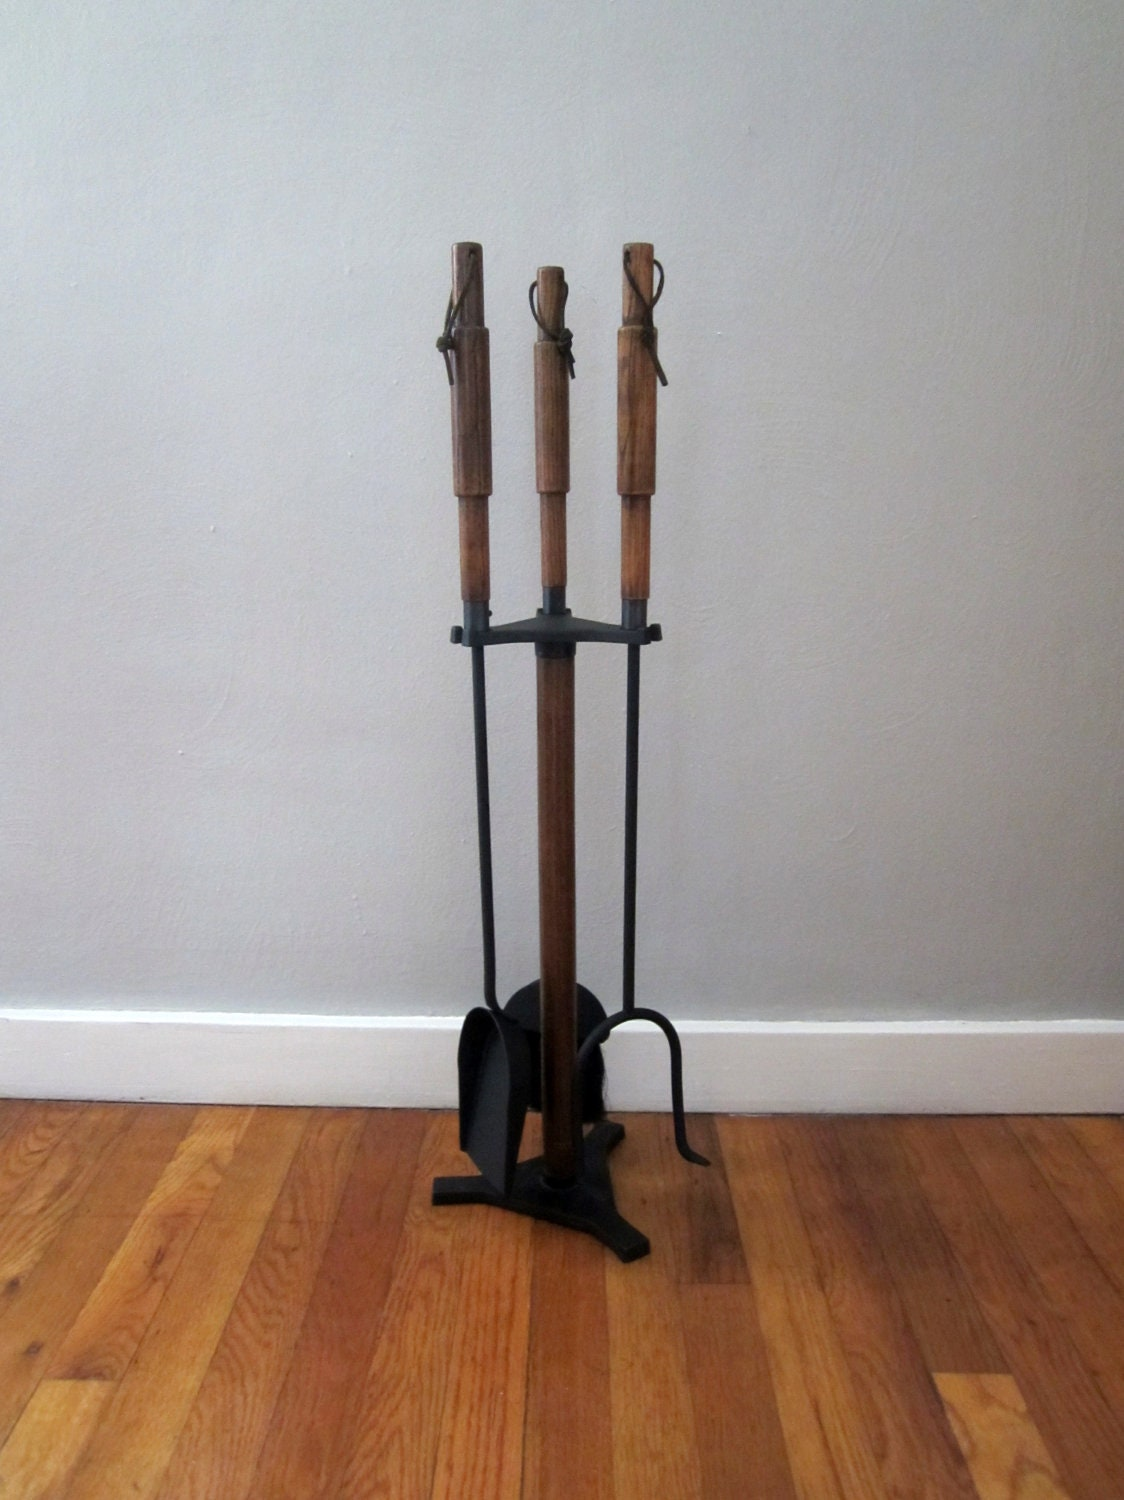 Mid Century Danish Modern Fireplace Tools By Lmlois On Etsy